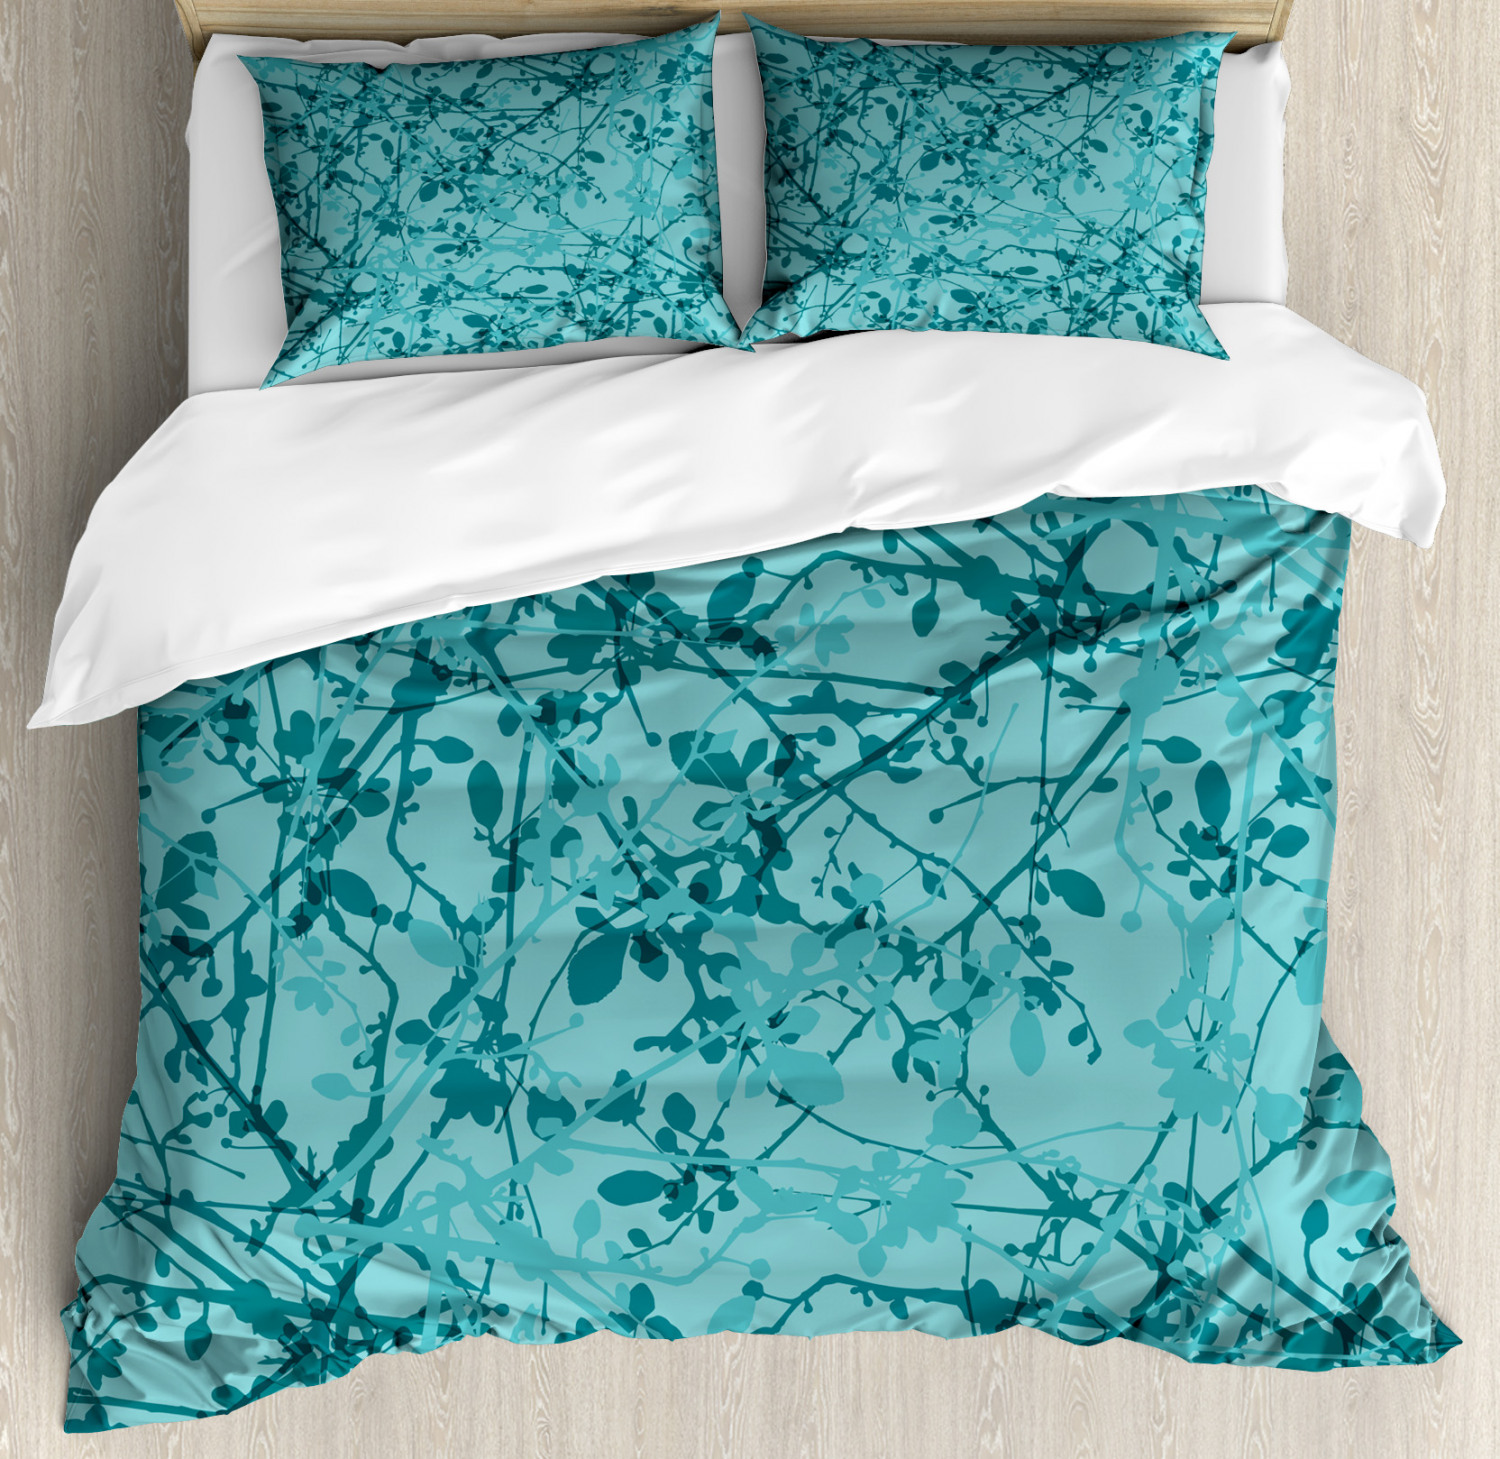 Teal Duvet Cover Set with Pillow Shams Ink Drawing Style Tree Print